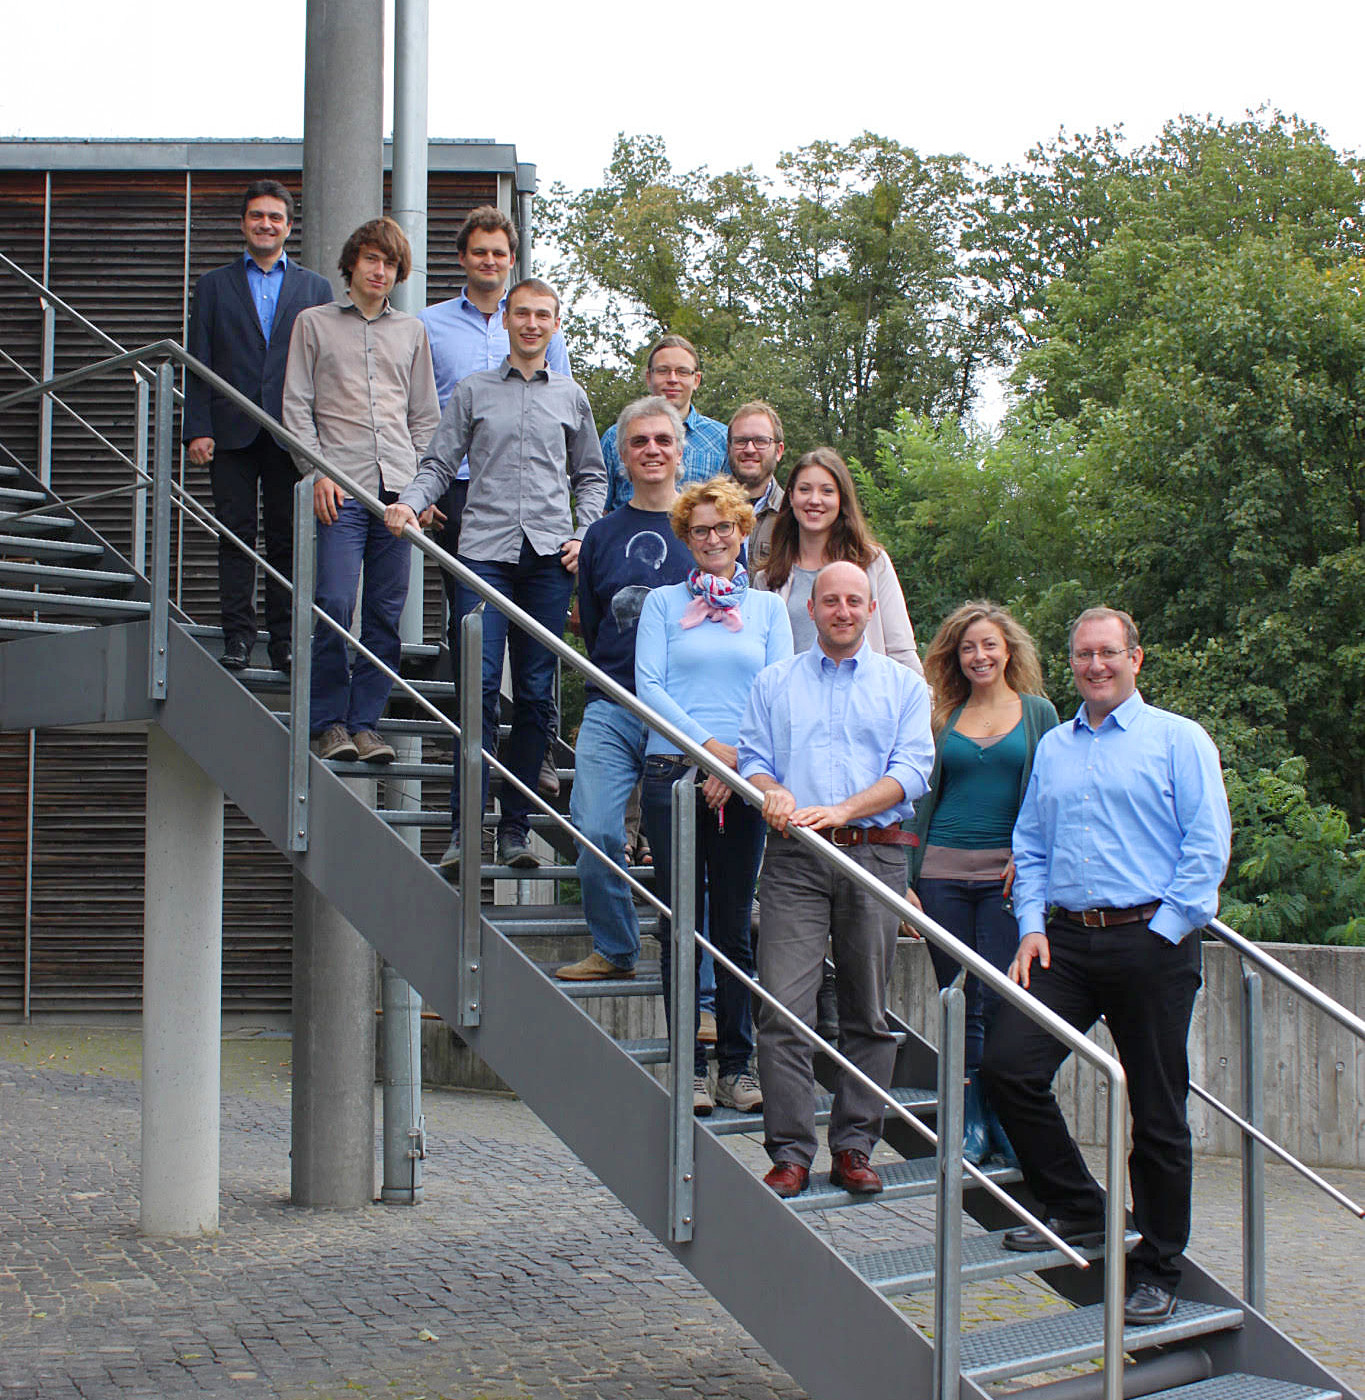 The AIP cosmology group